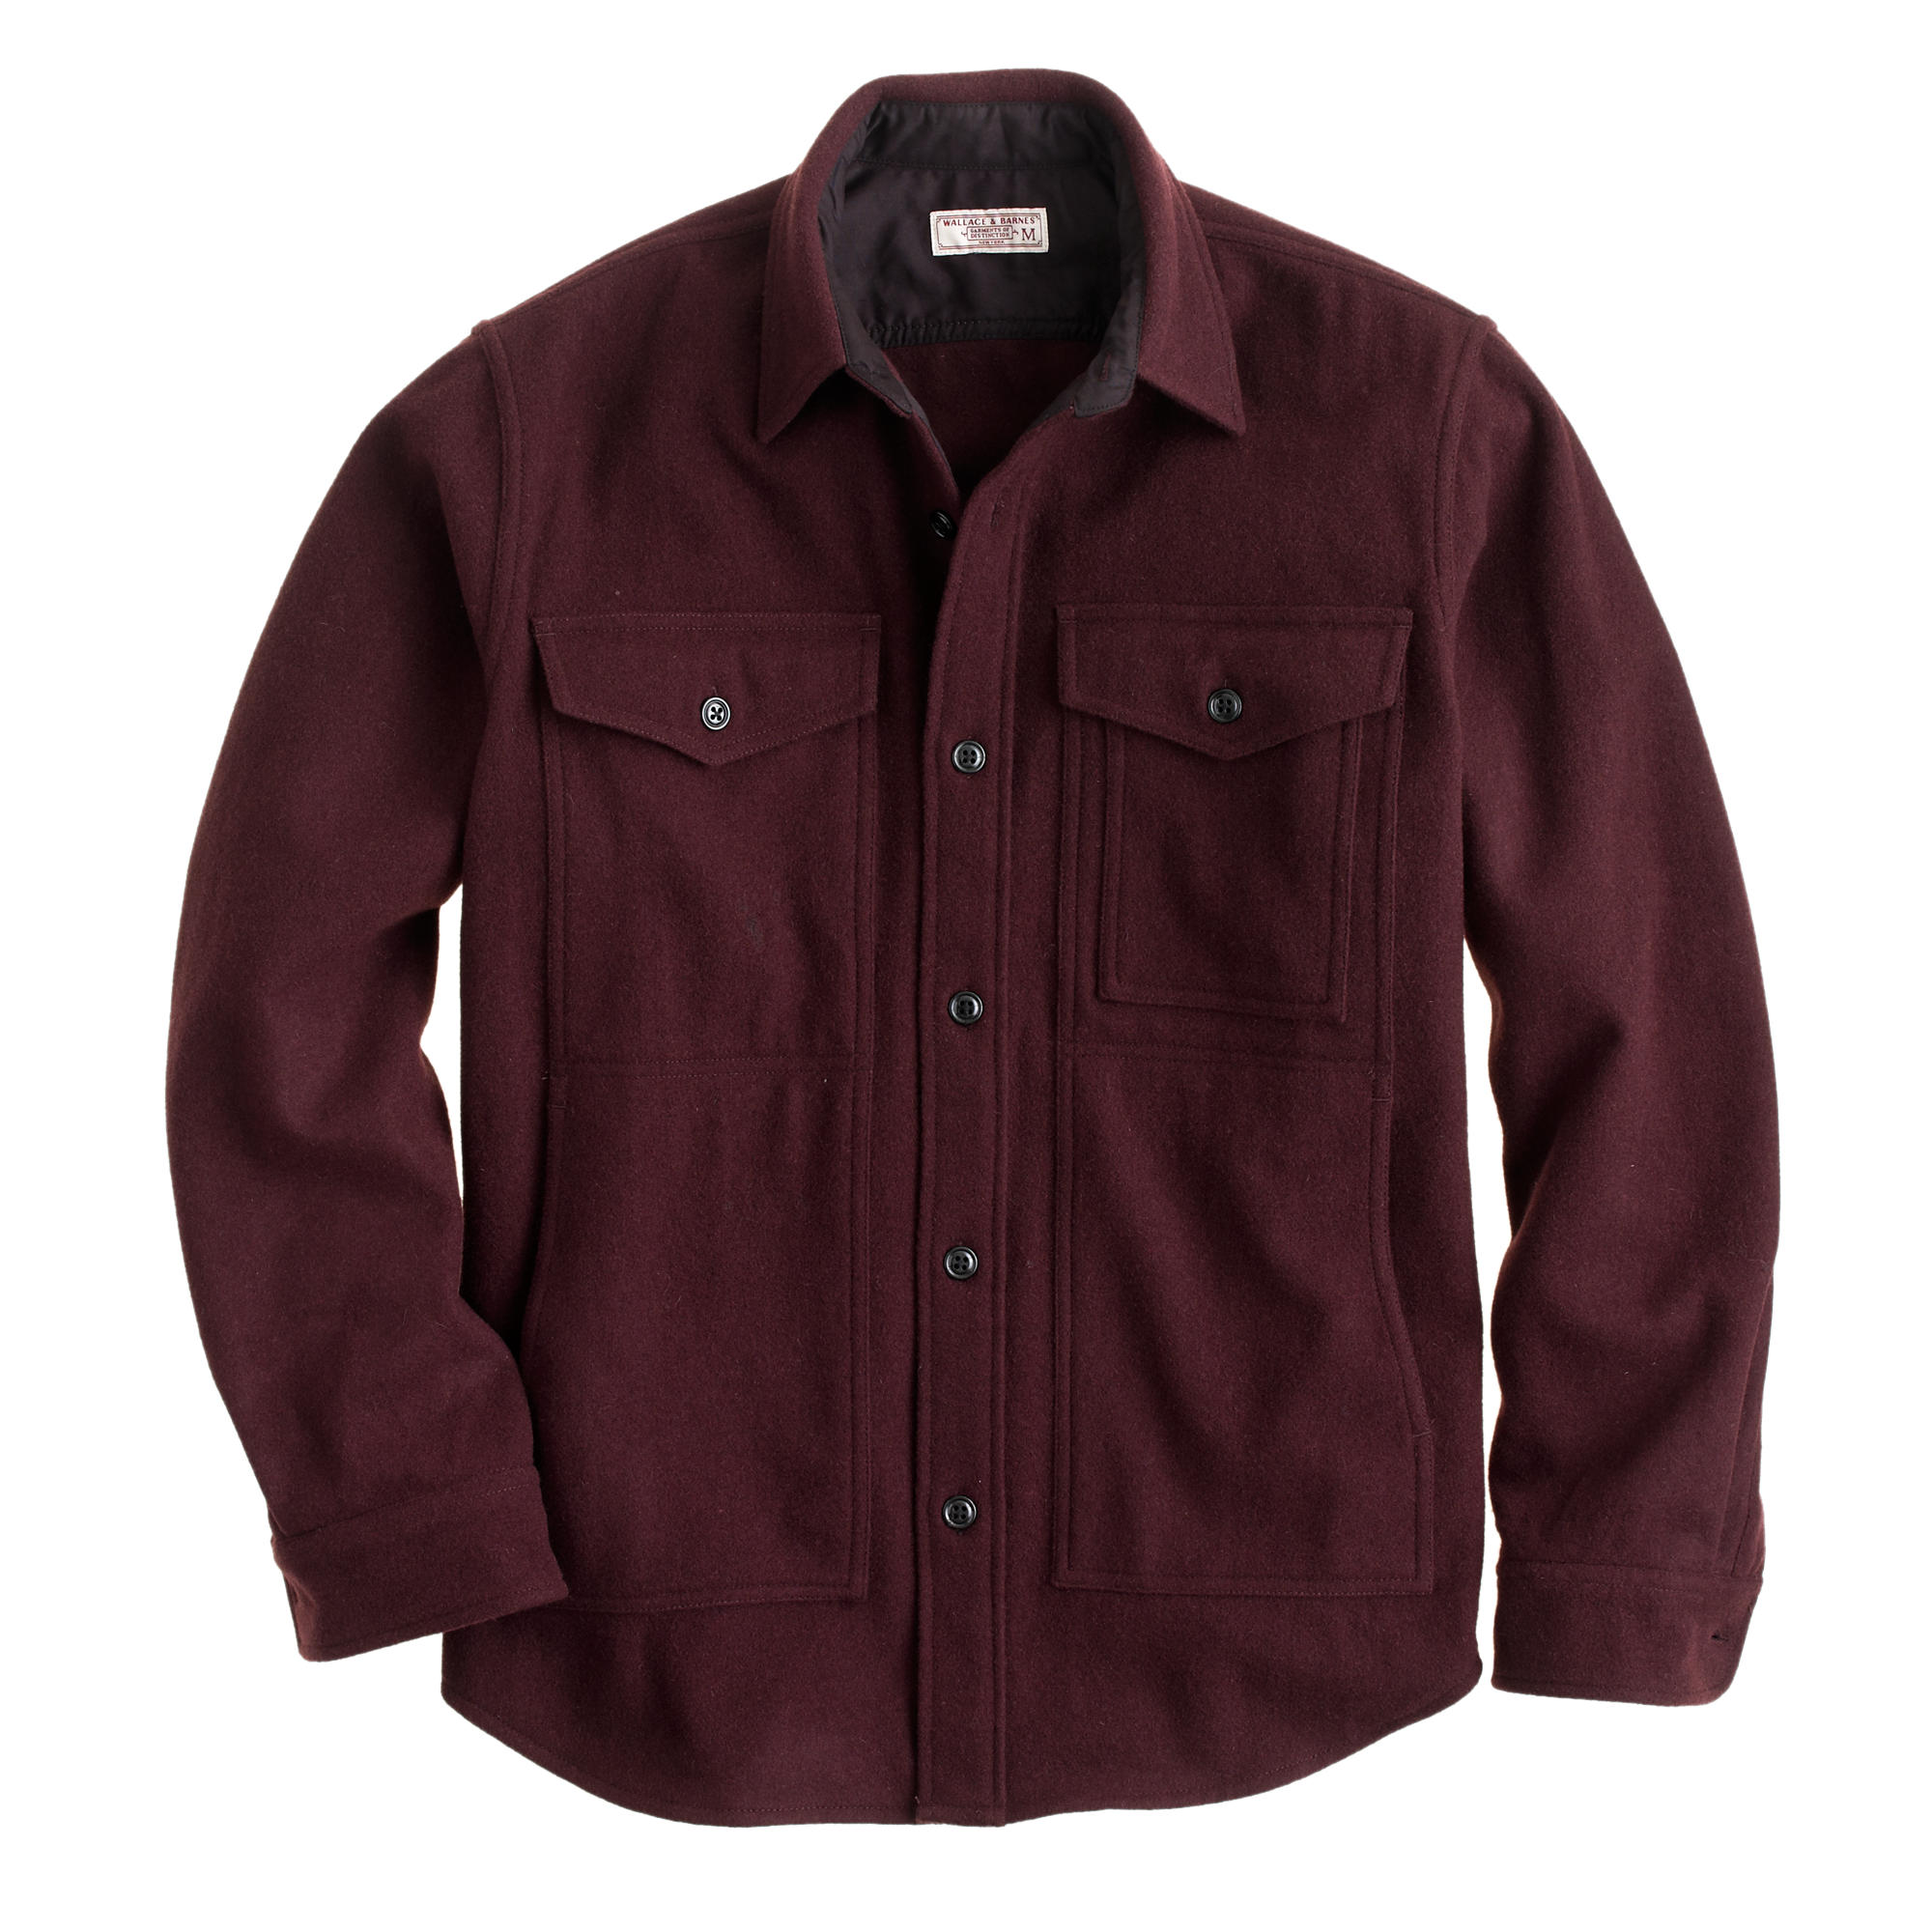 Wallace & Barnes wool overshirt :